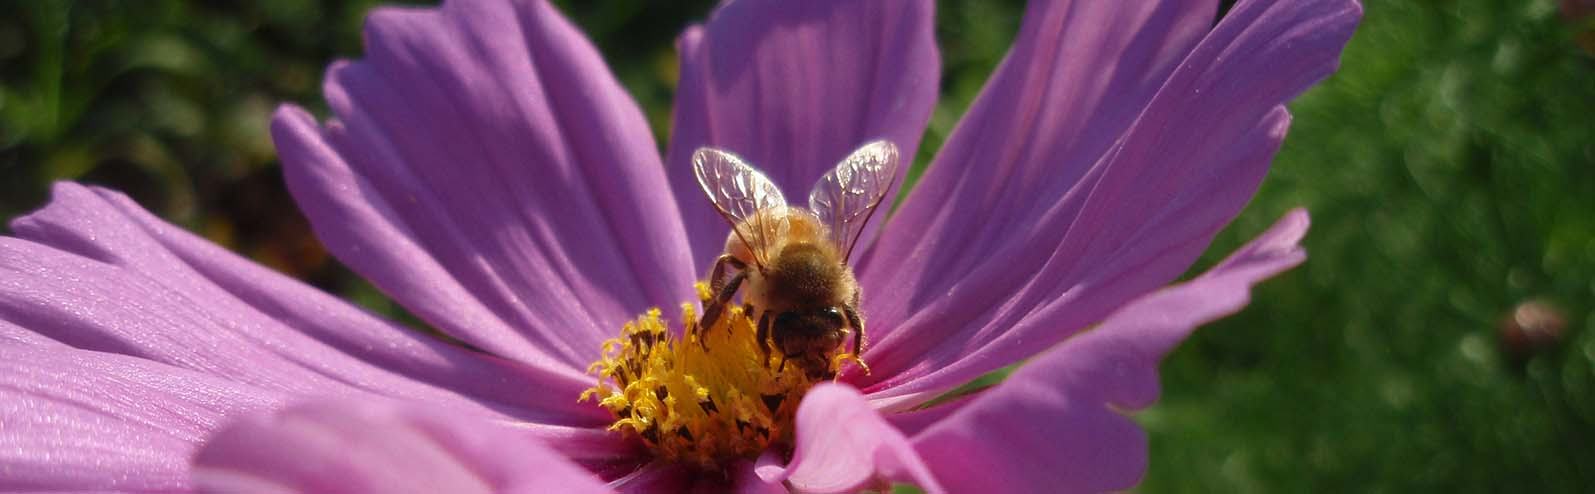 Honey bee on a pink cosmo flower